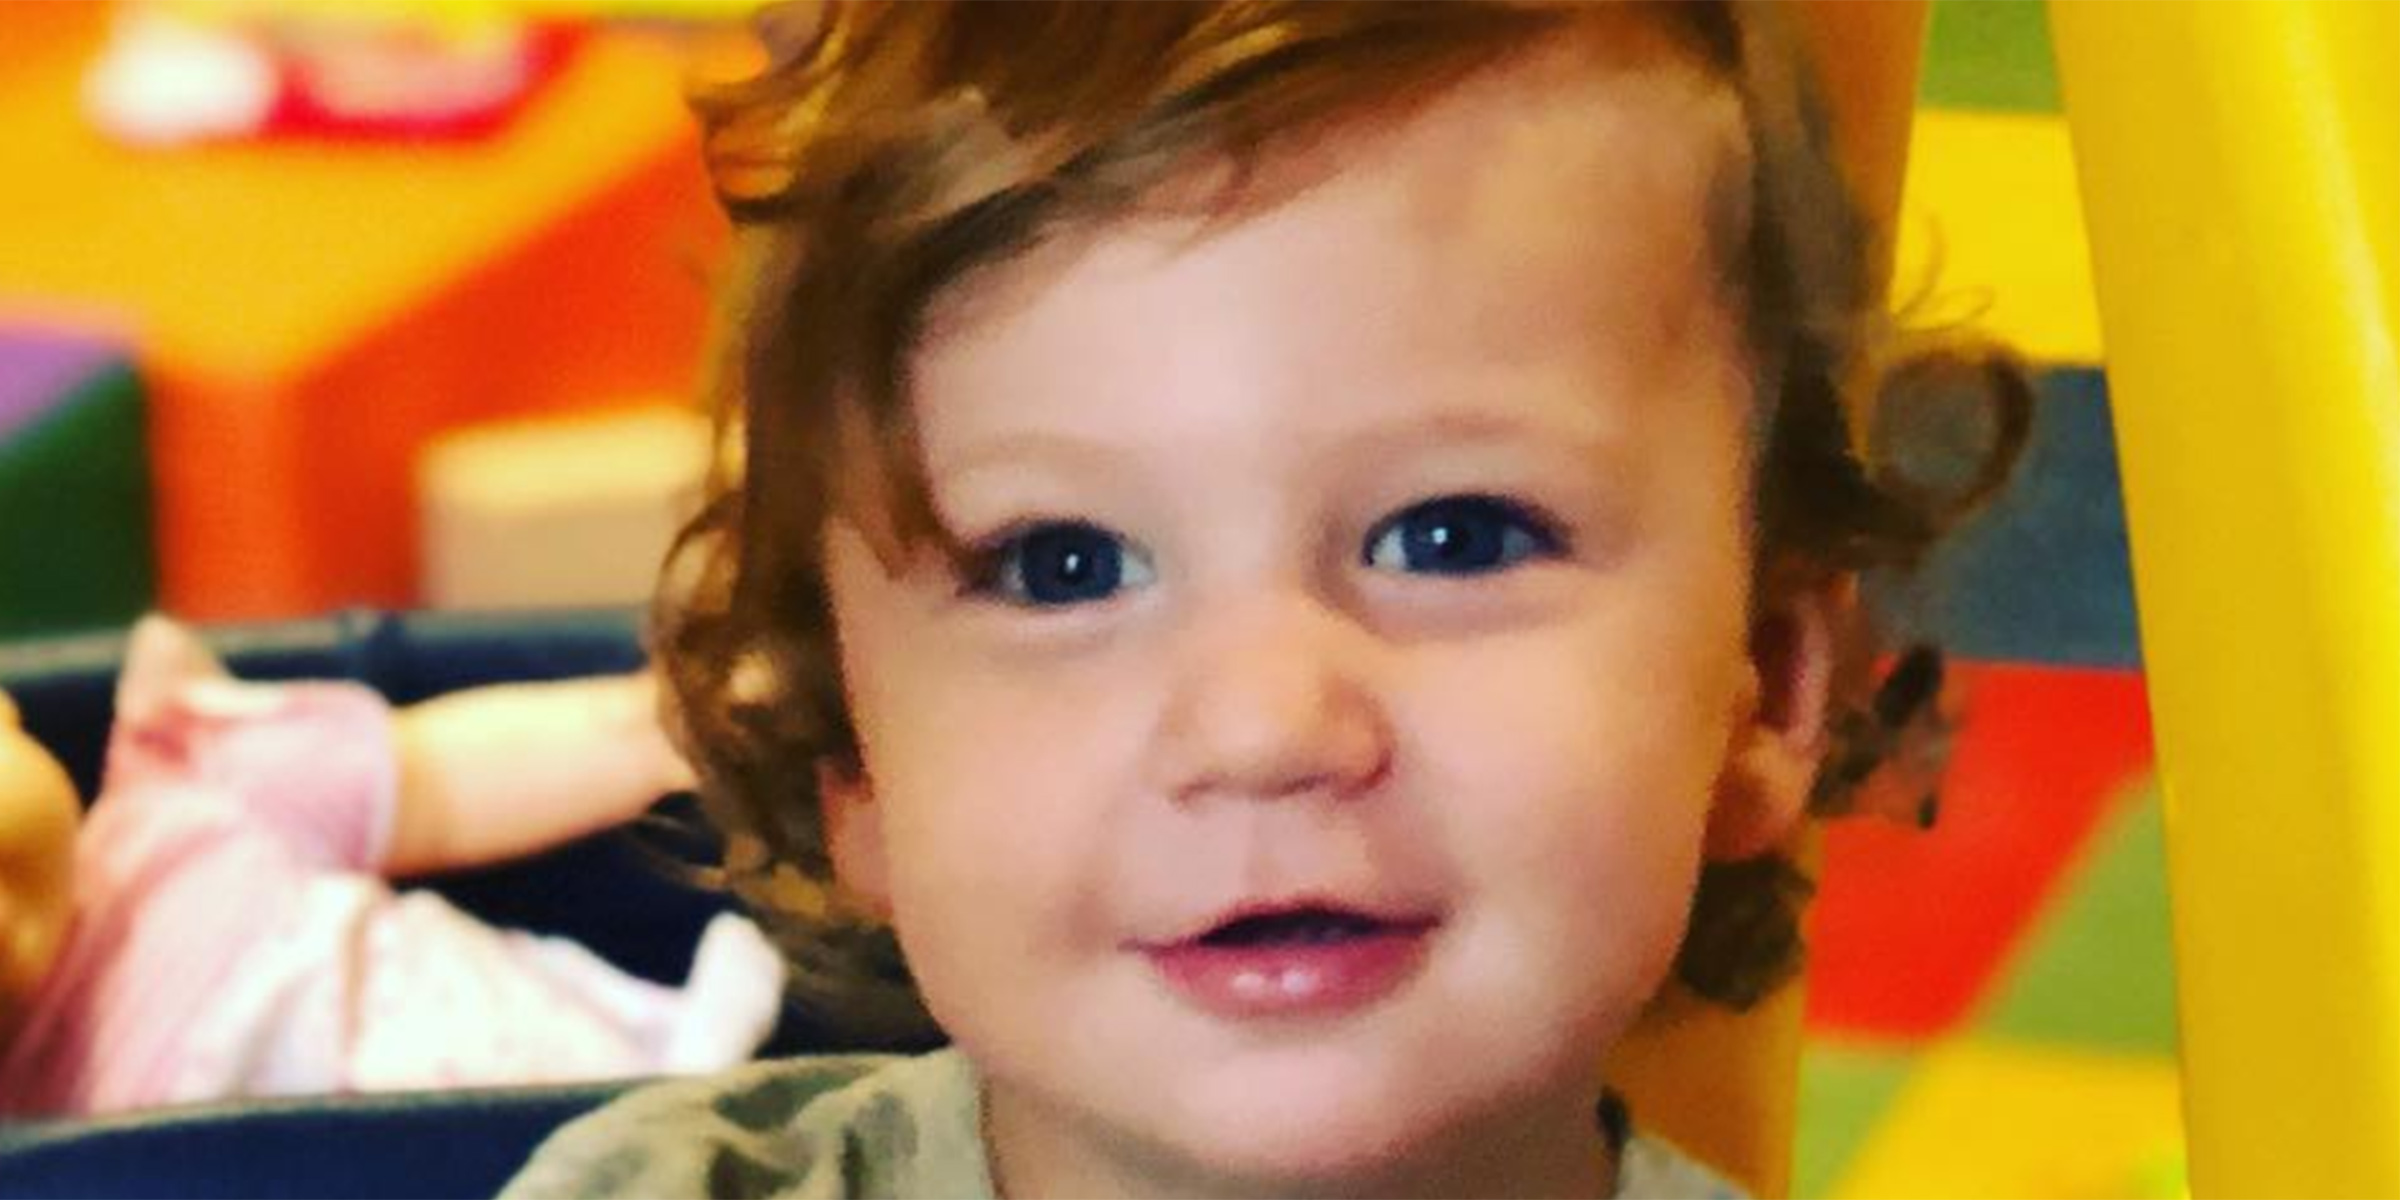 Savannah Guthrie Shares Photo After Son Charleys 1st Haircut